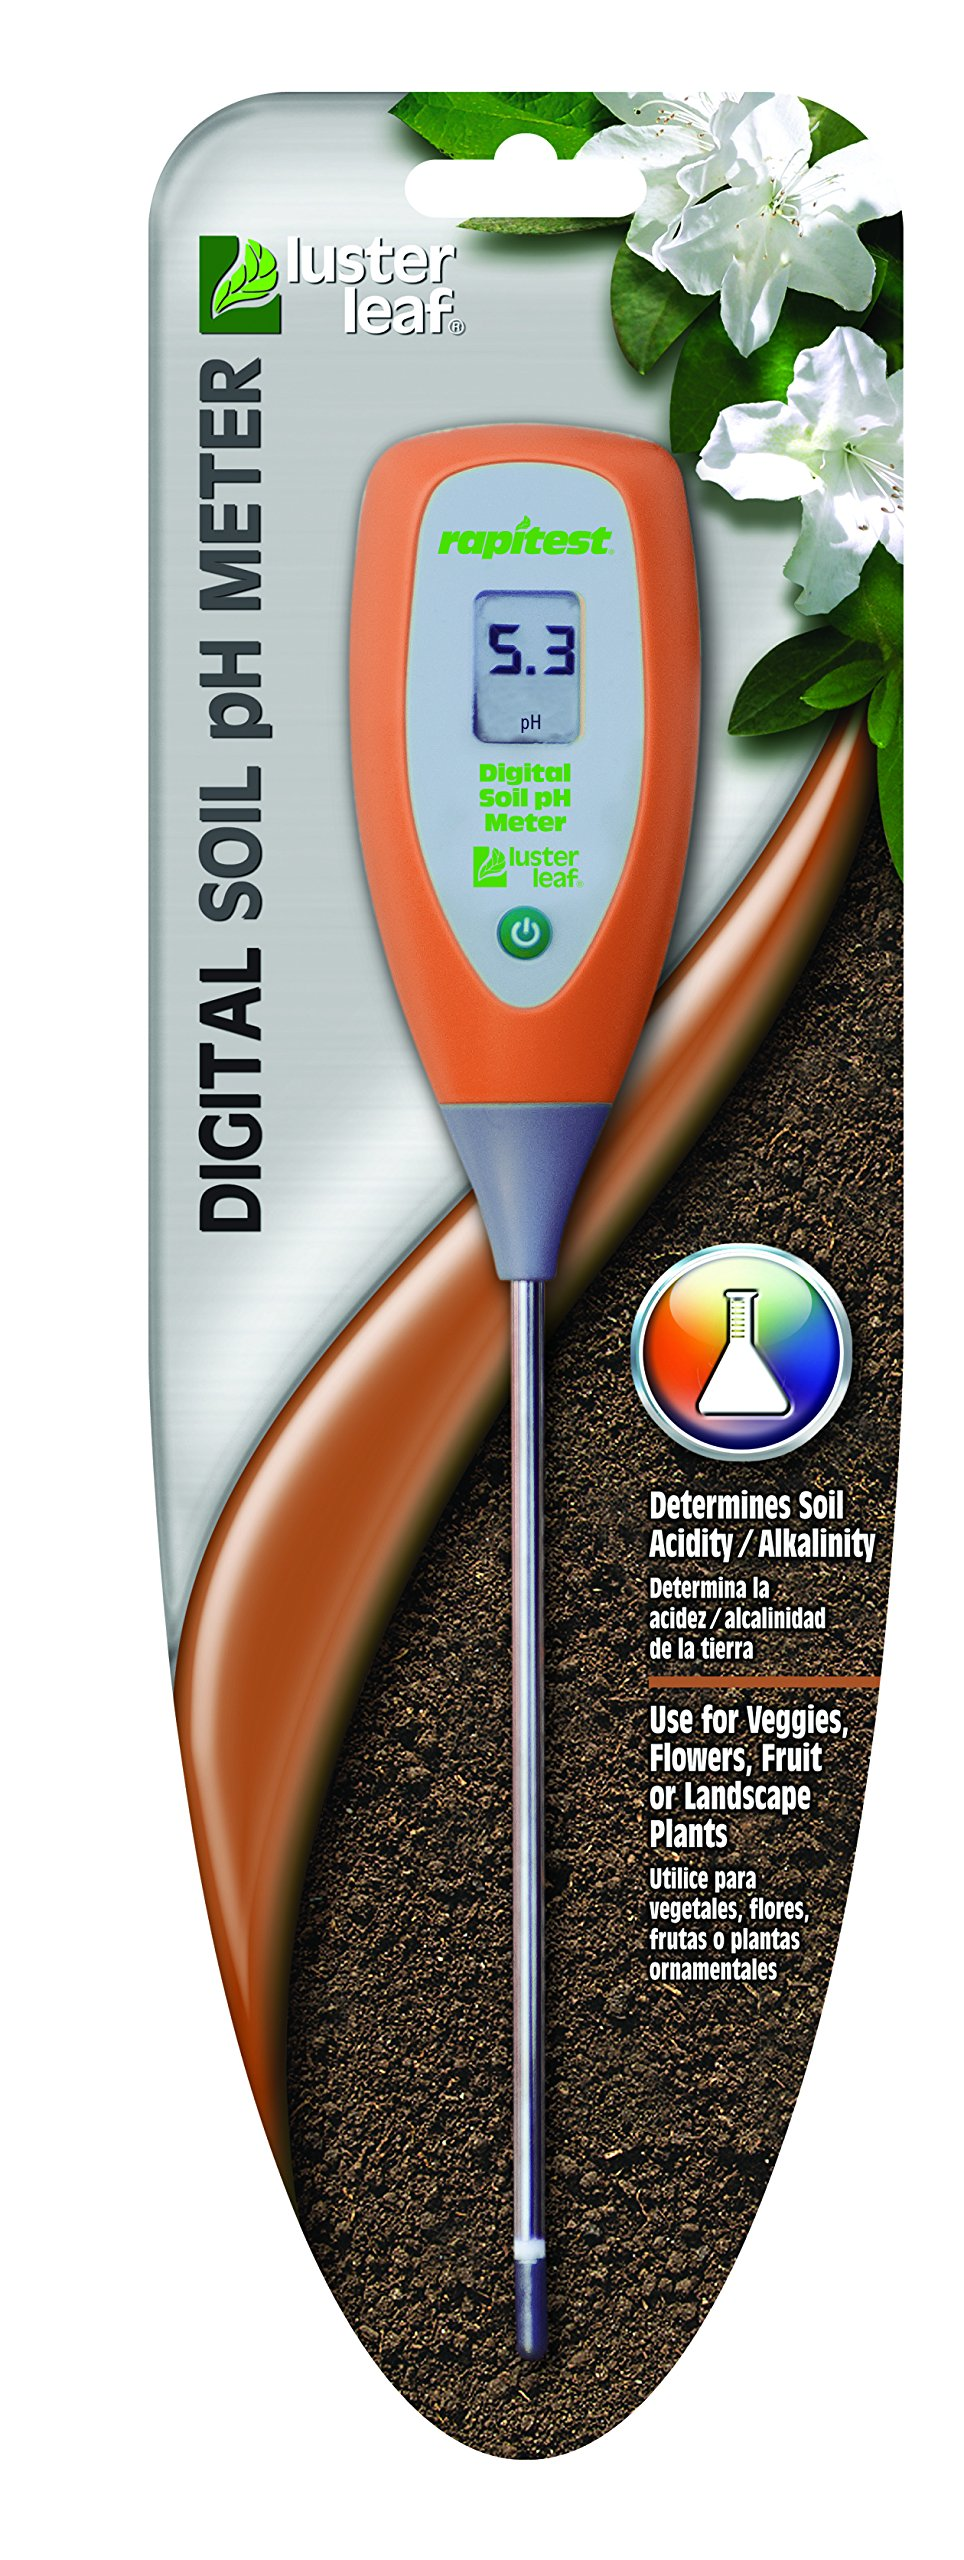 Luster Leaf 2956 Rapitest Digital Soil Ph Meter